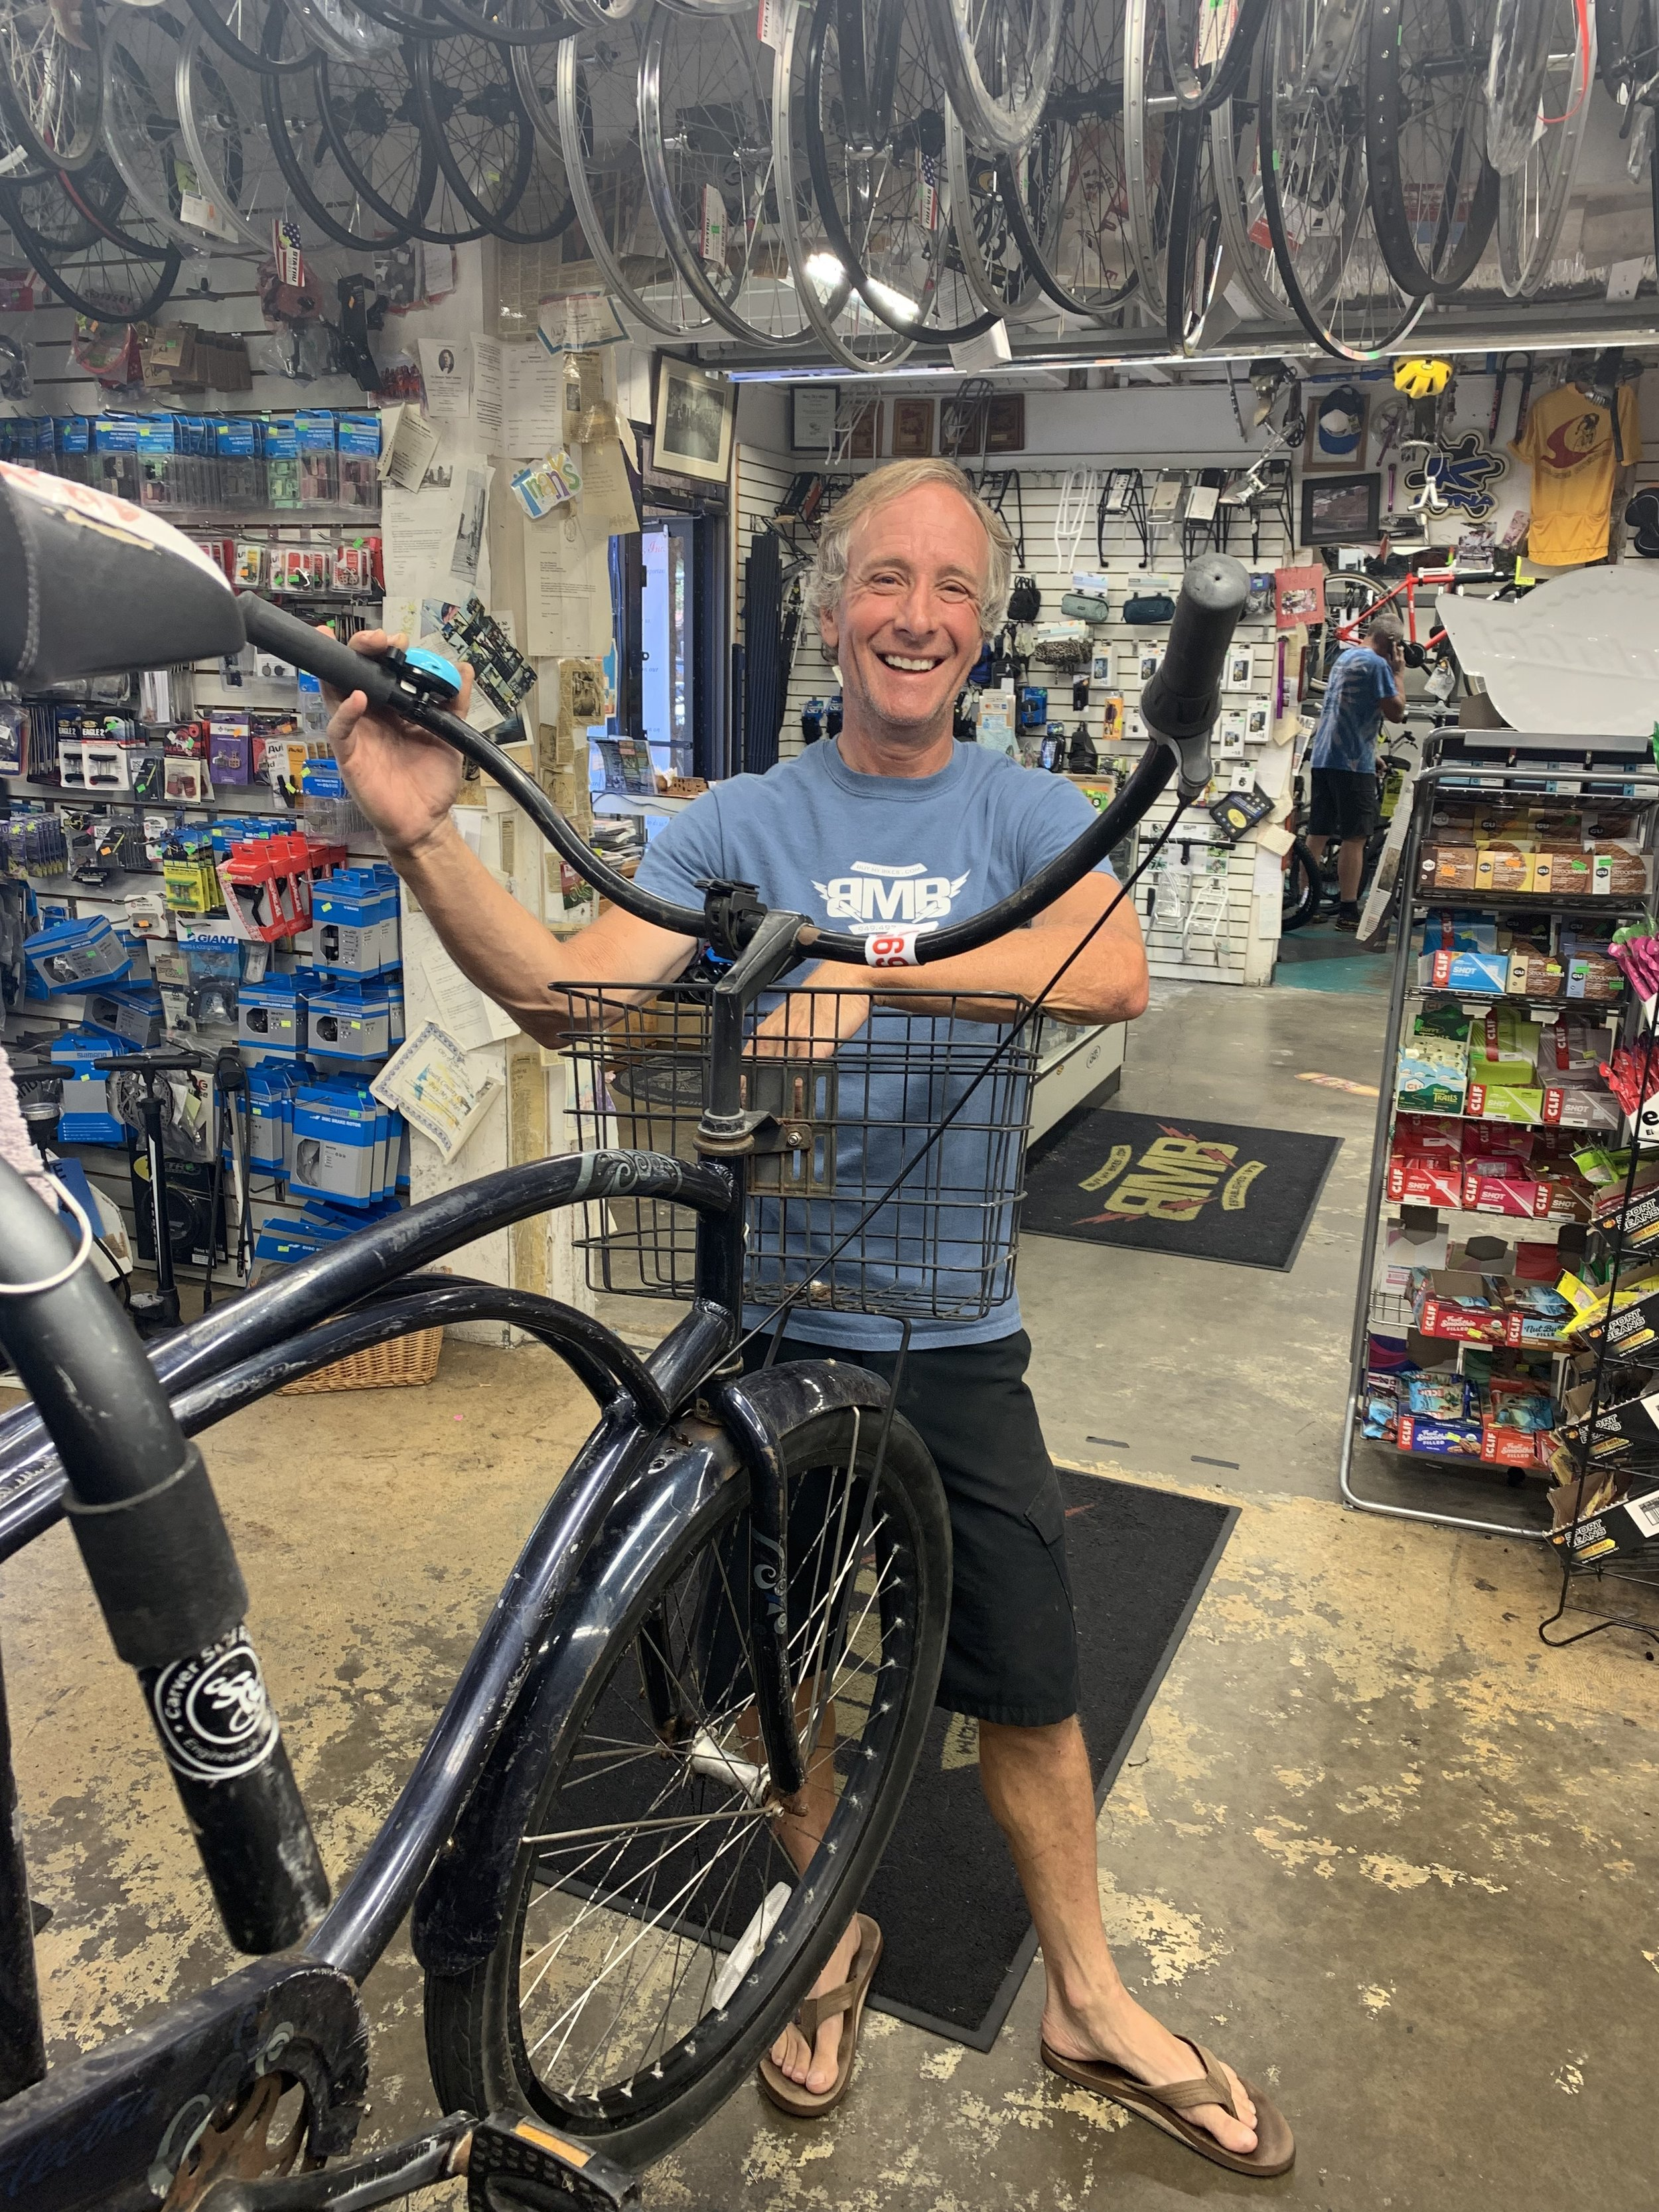 """Carl - Senior repair man since the 80's. His motto: """"Enjoy your bicycles, the outdoors and the thrill that it brings."""